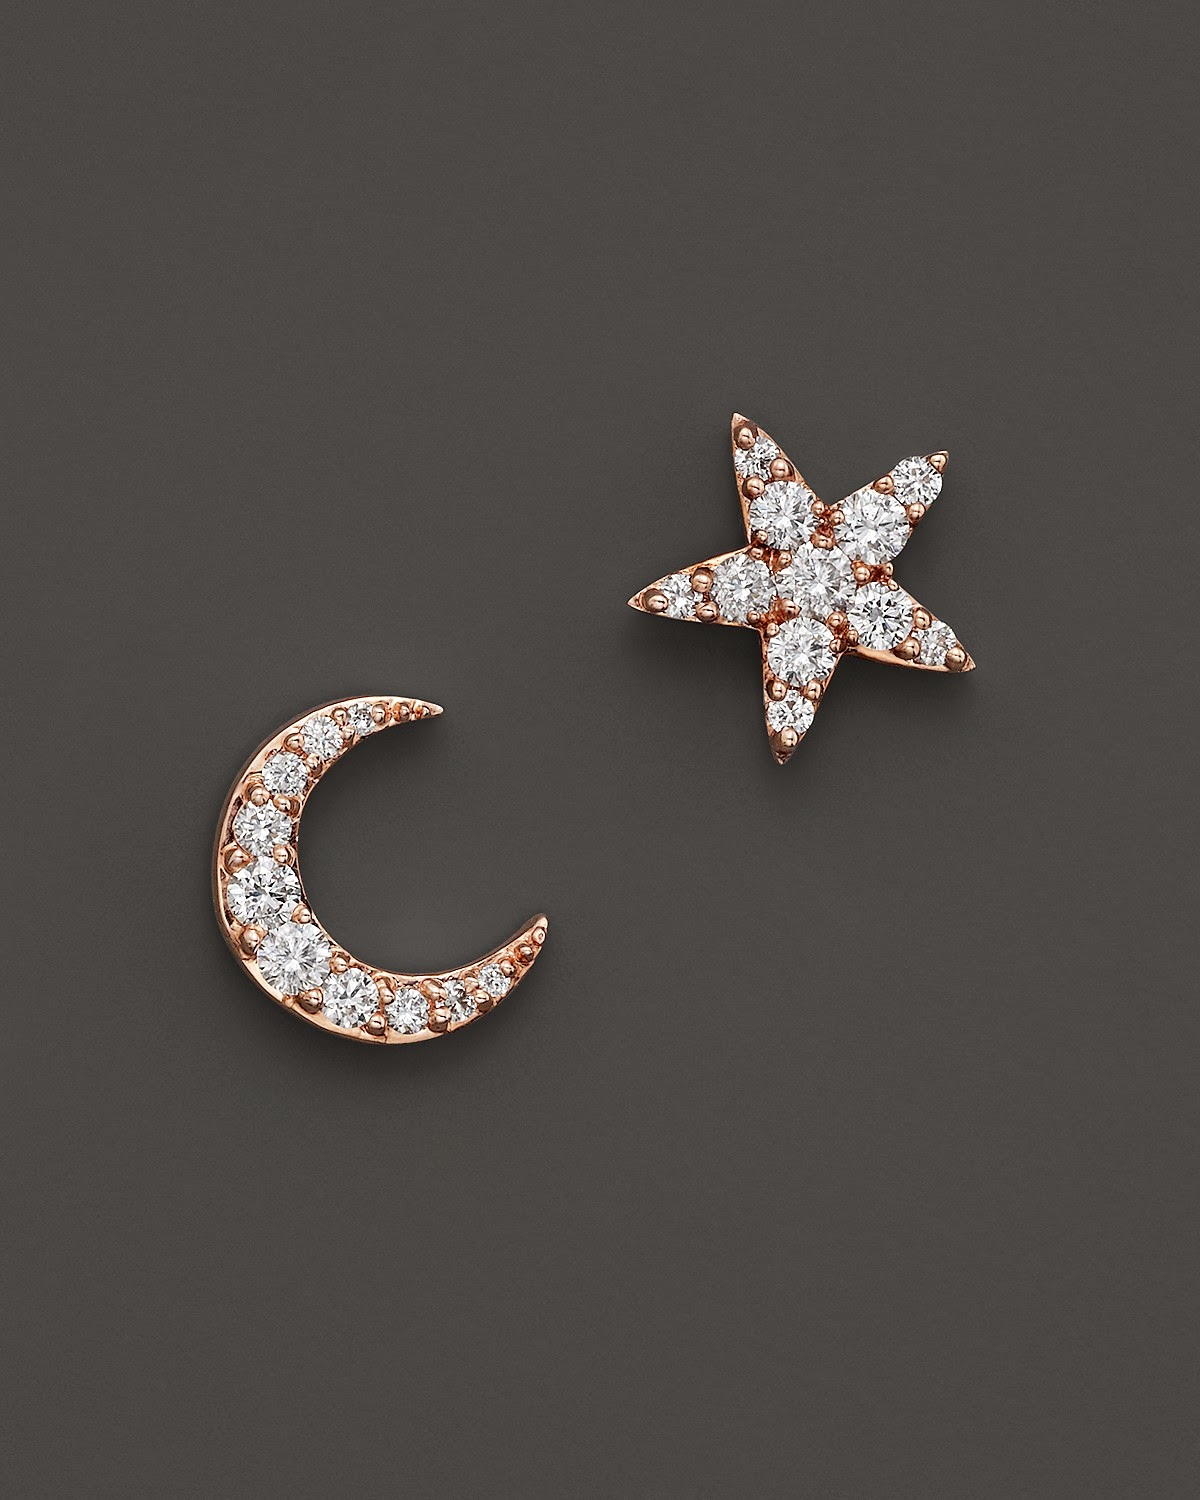 Diamond Earrings For Baby Star And Moon Shapes